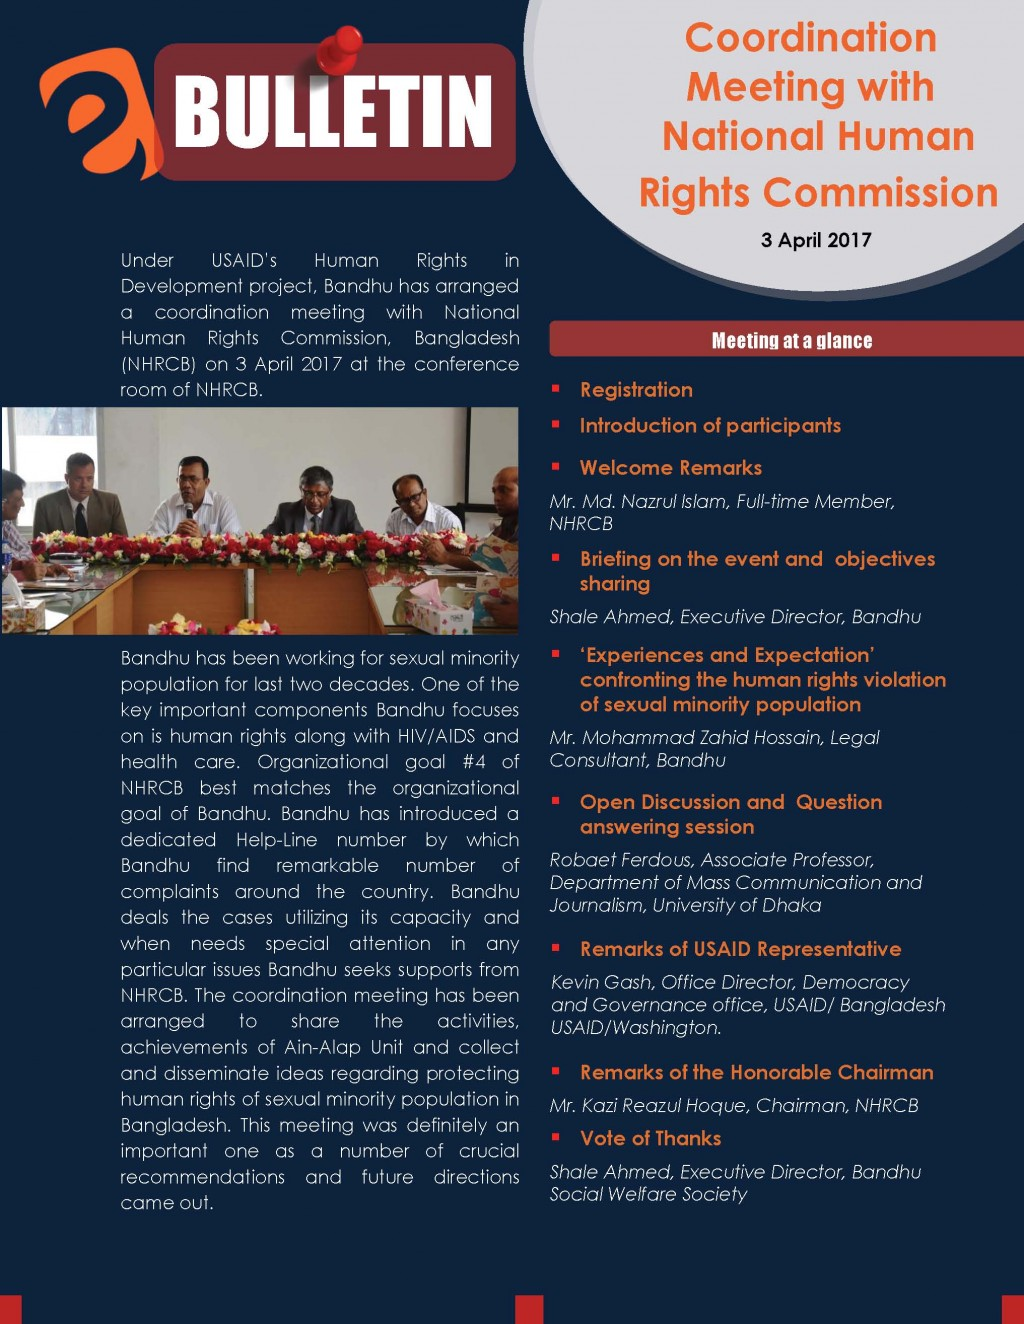 E-Bulletin_Meeting with NHRC_Page_1